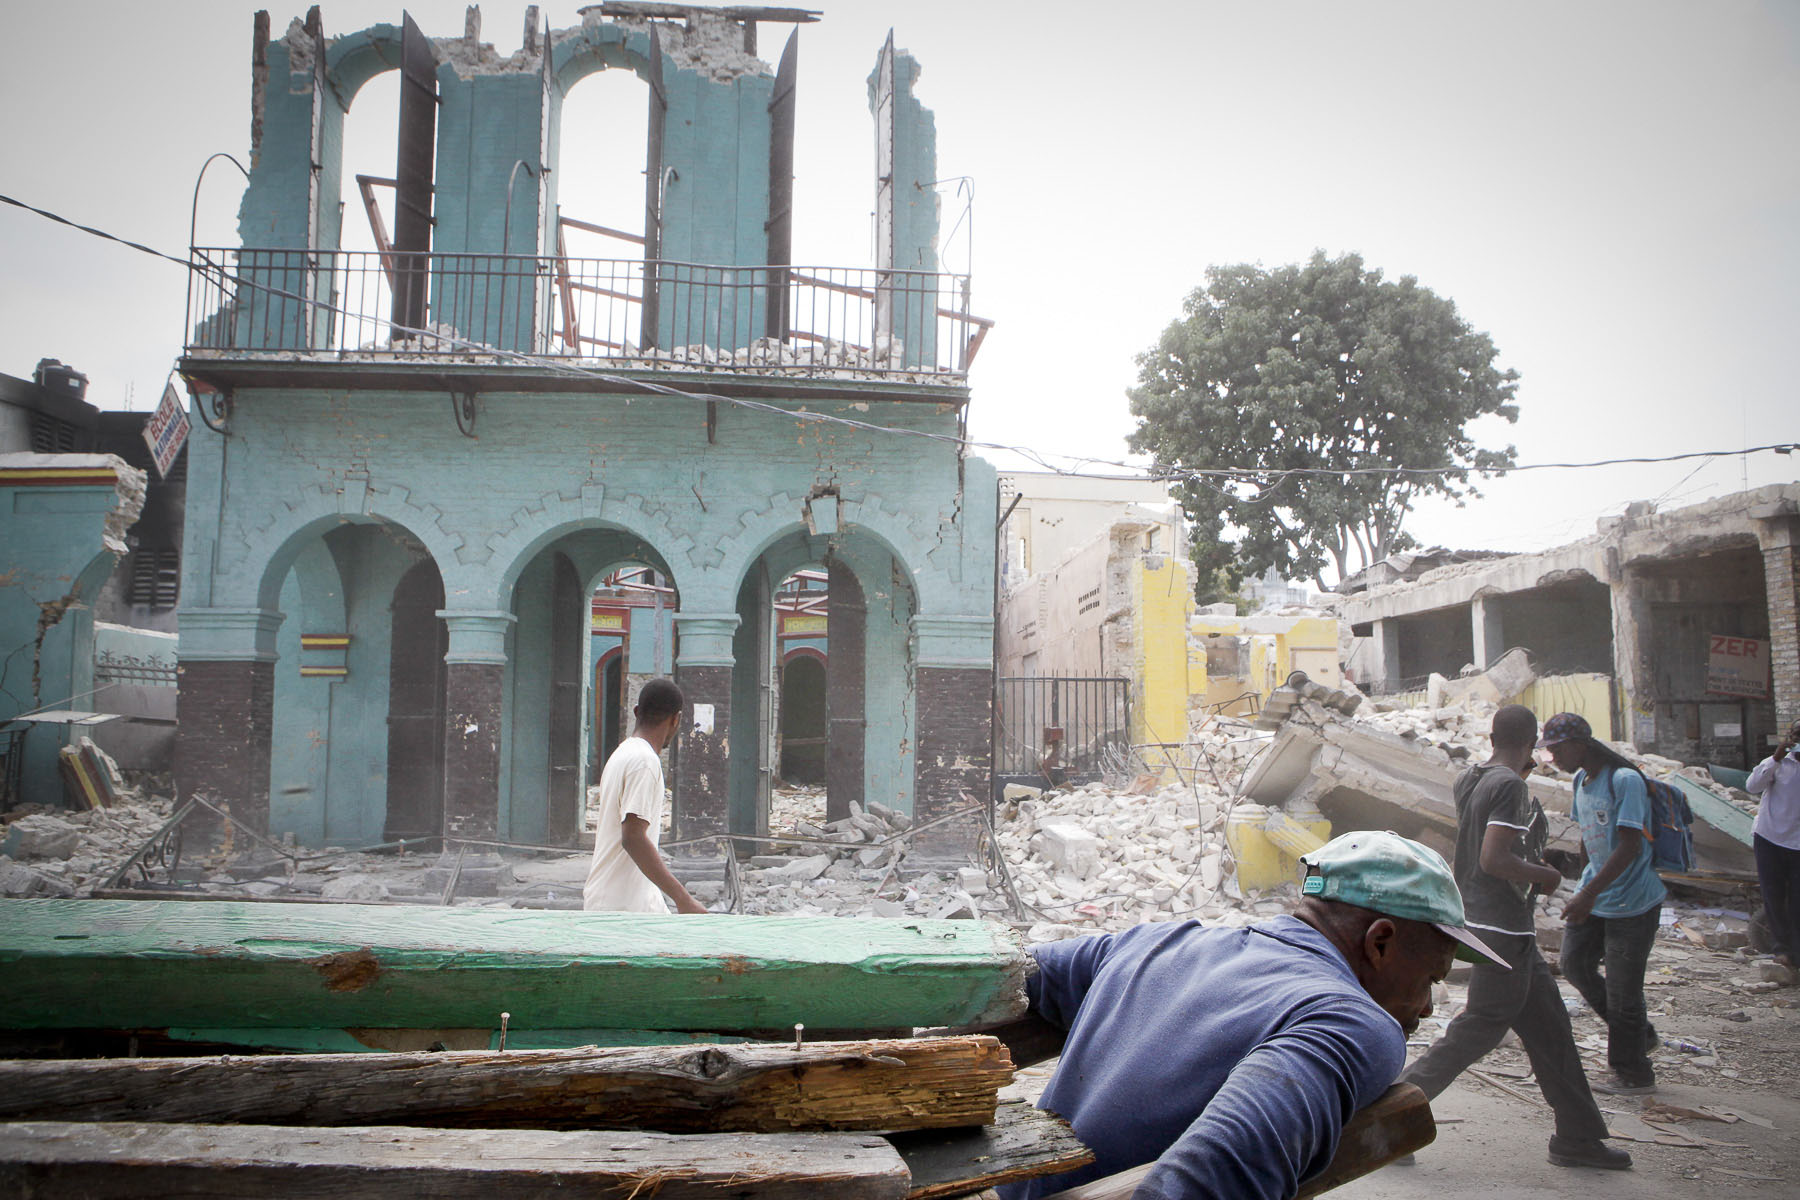 A school destroyed in the city center on February 4, 2010